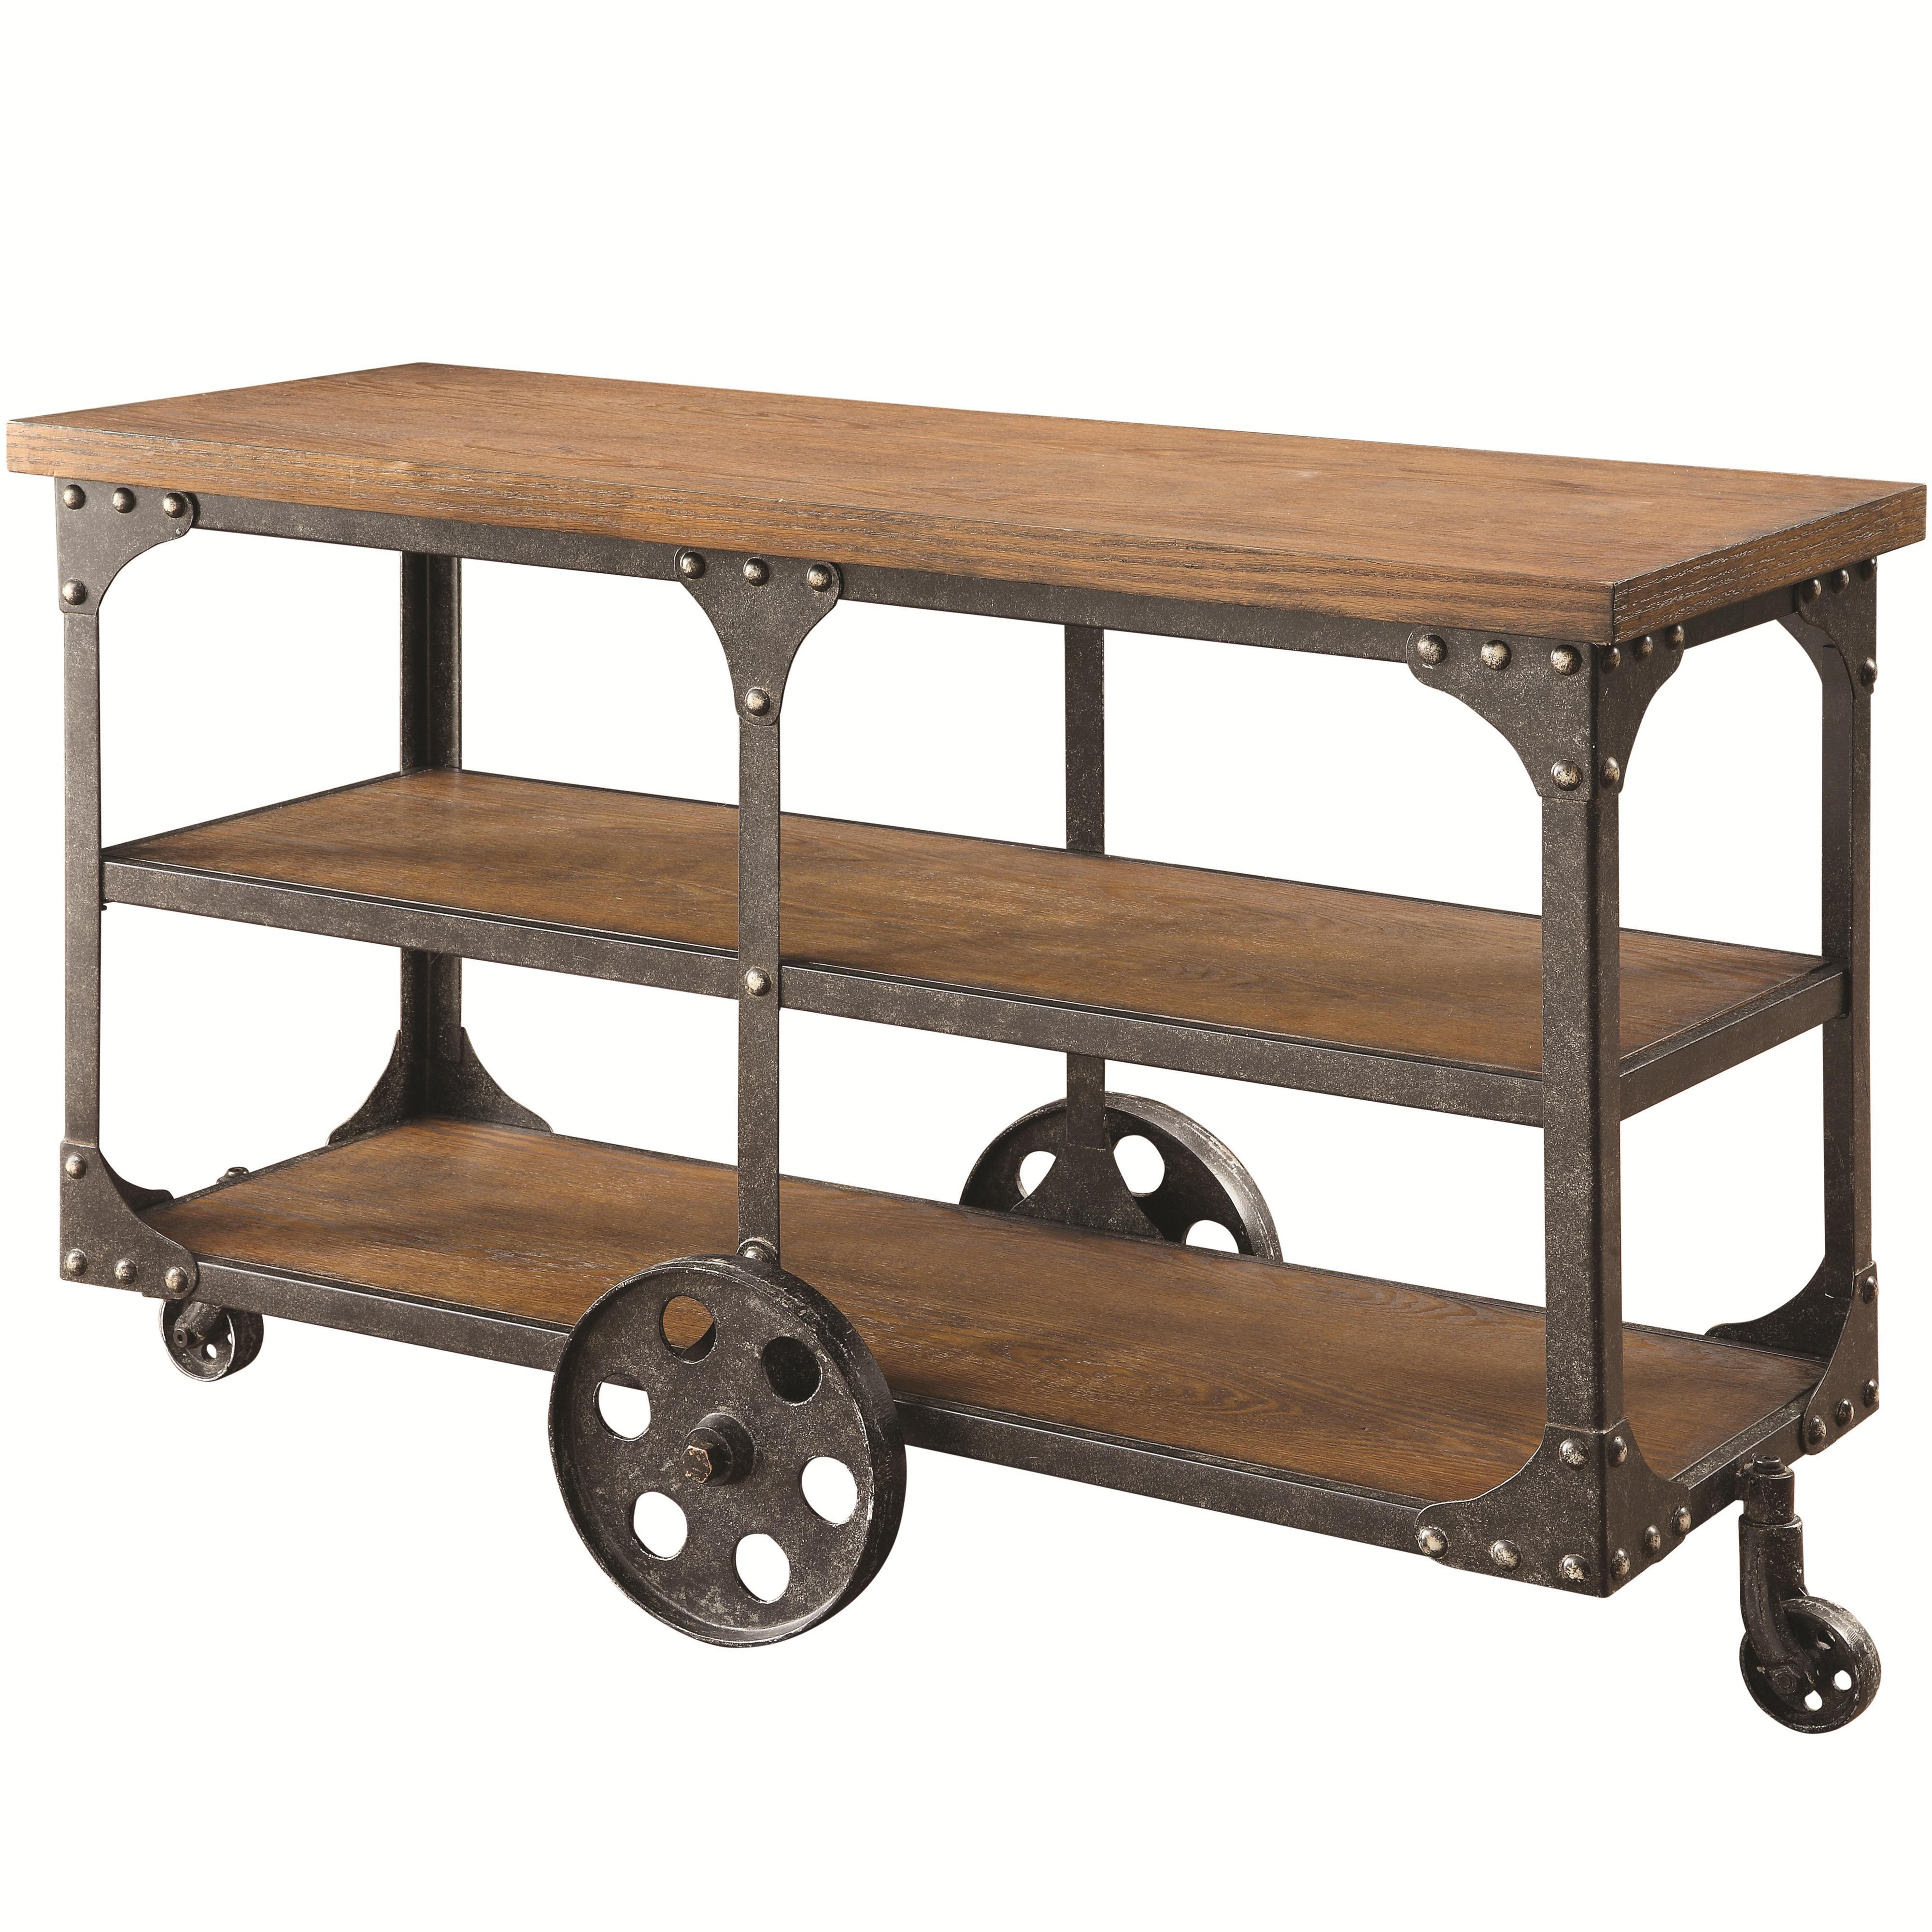 70112 Sofa Table by Coaster at Standard Furniture